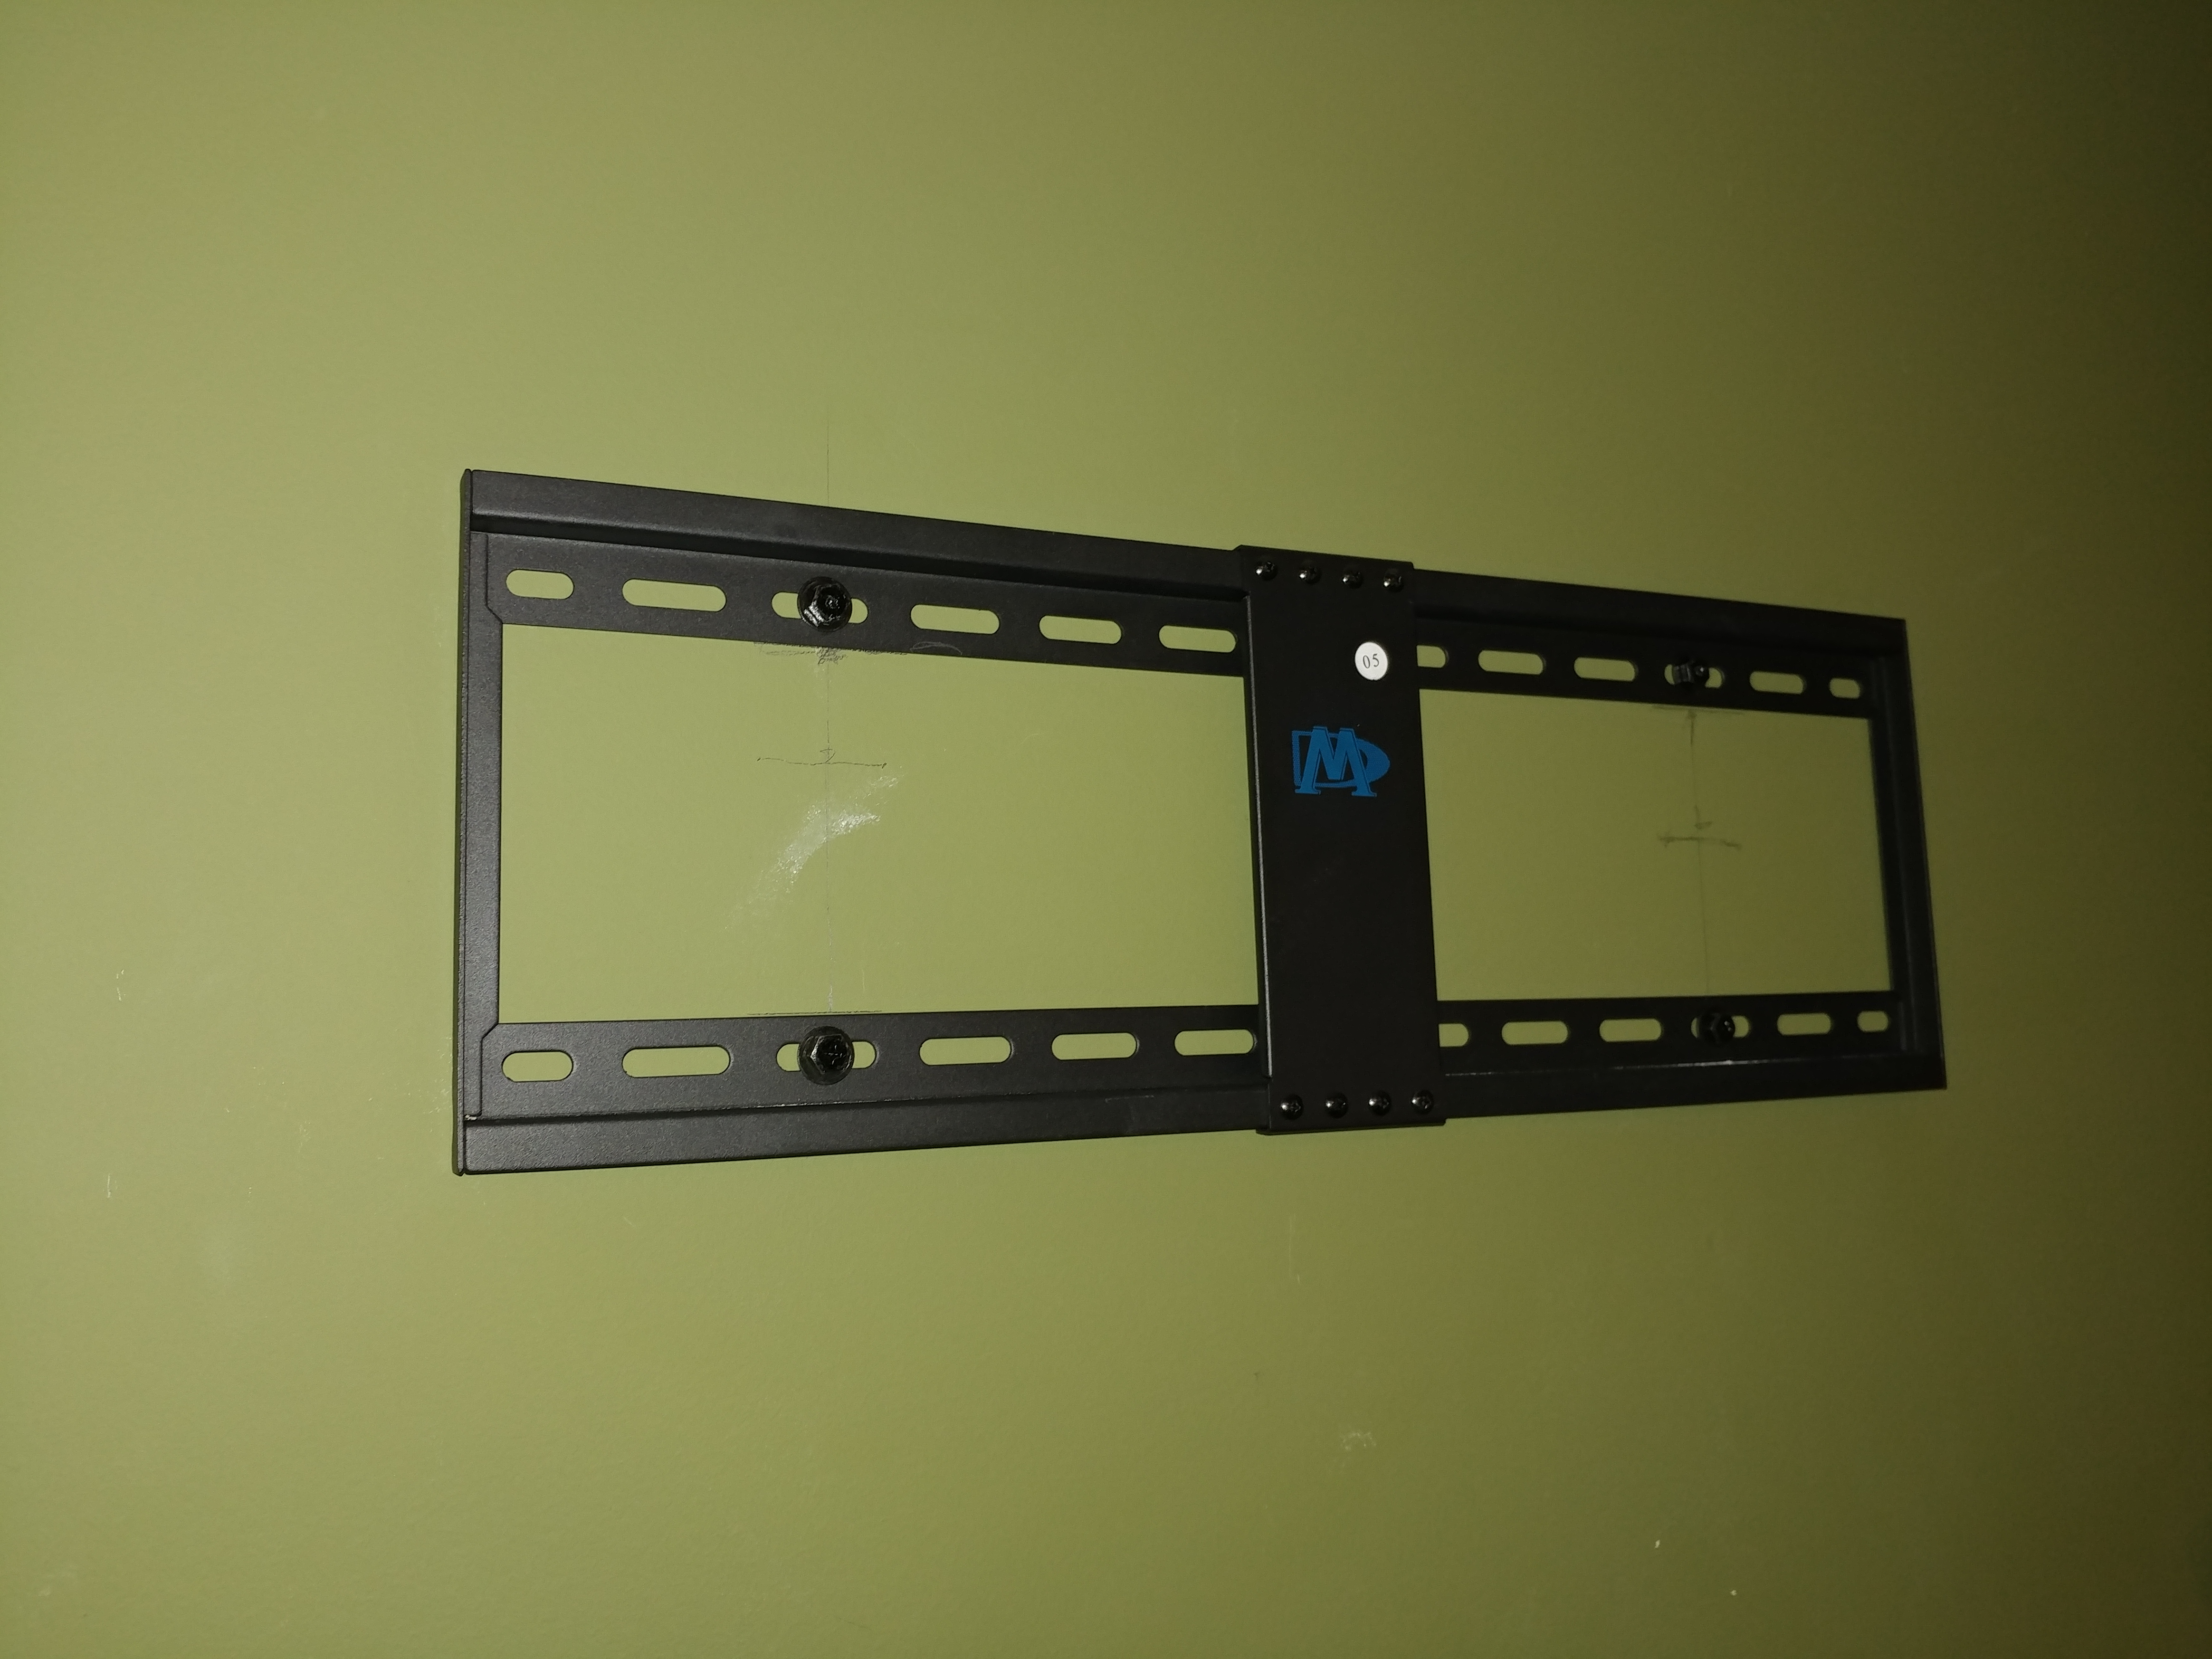 TV monitor mount installed